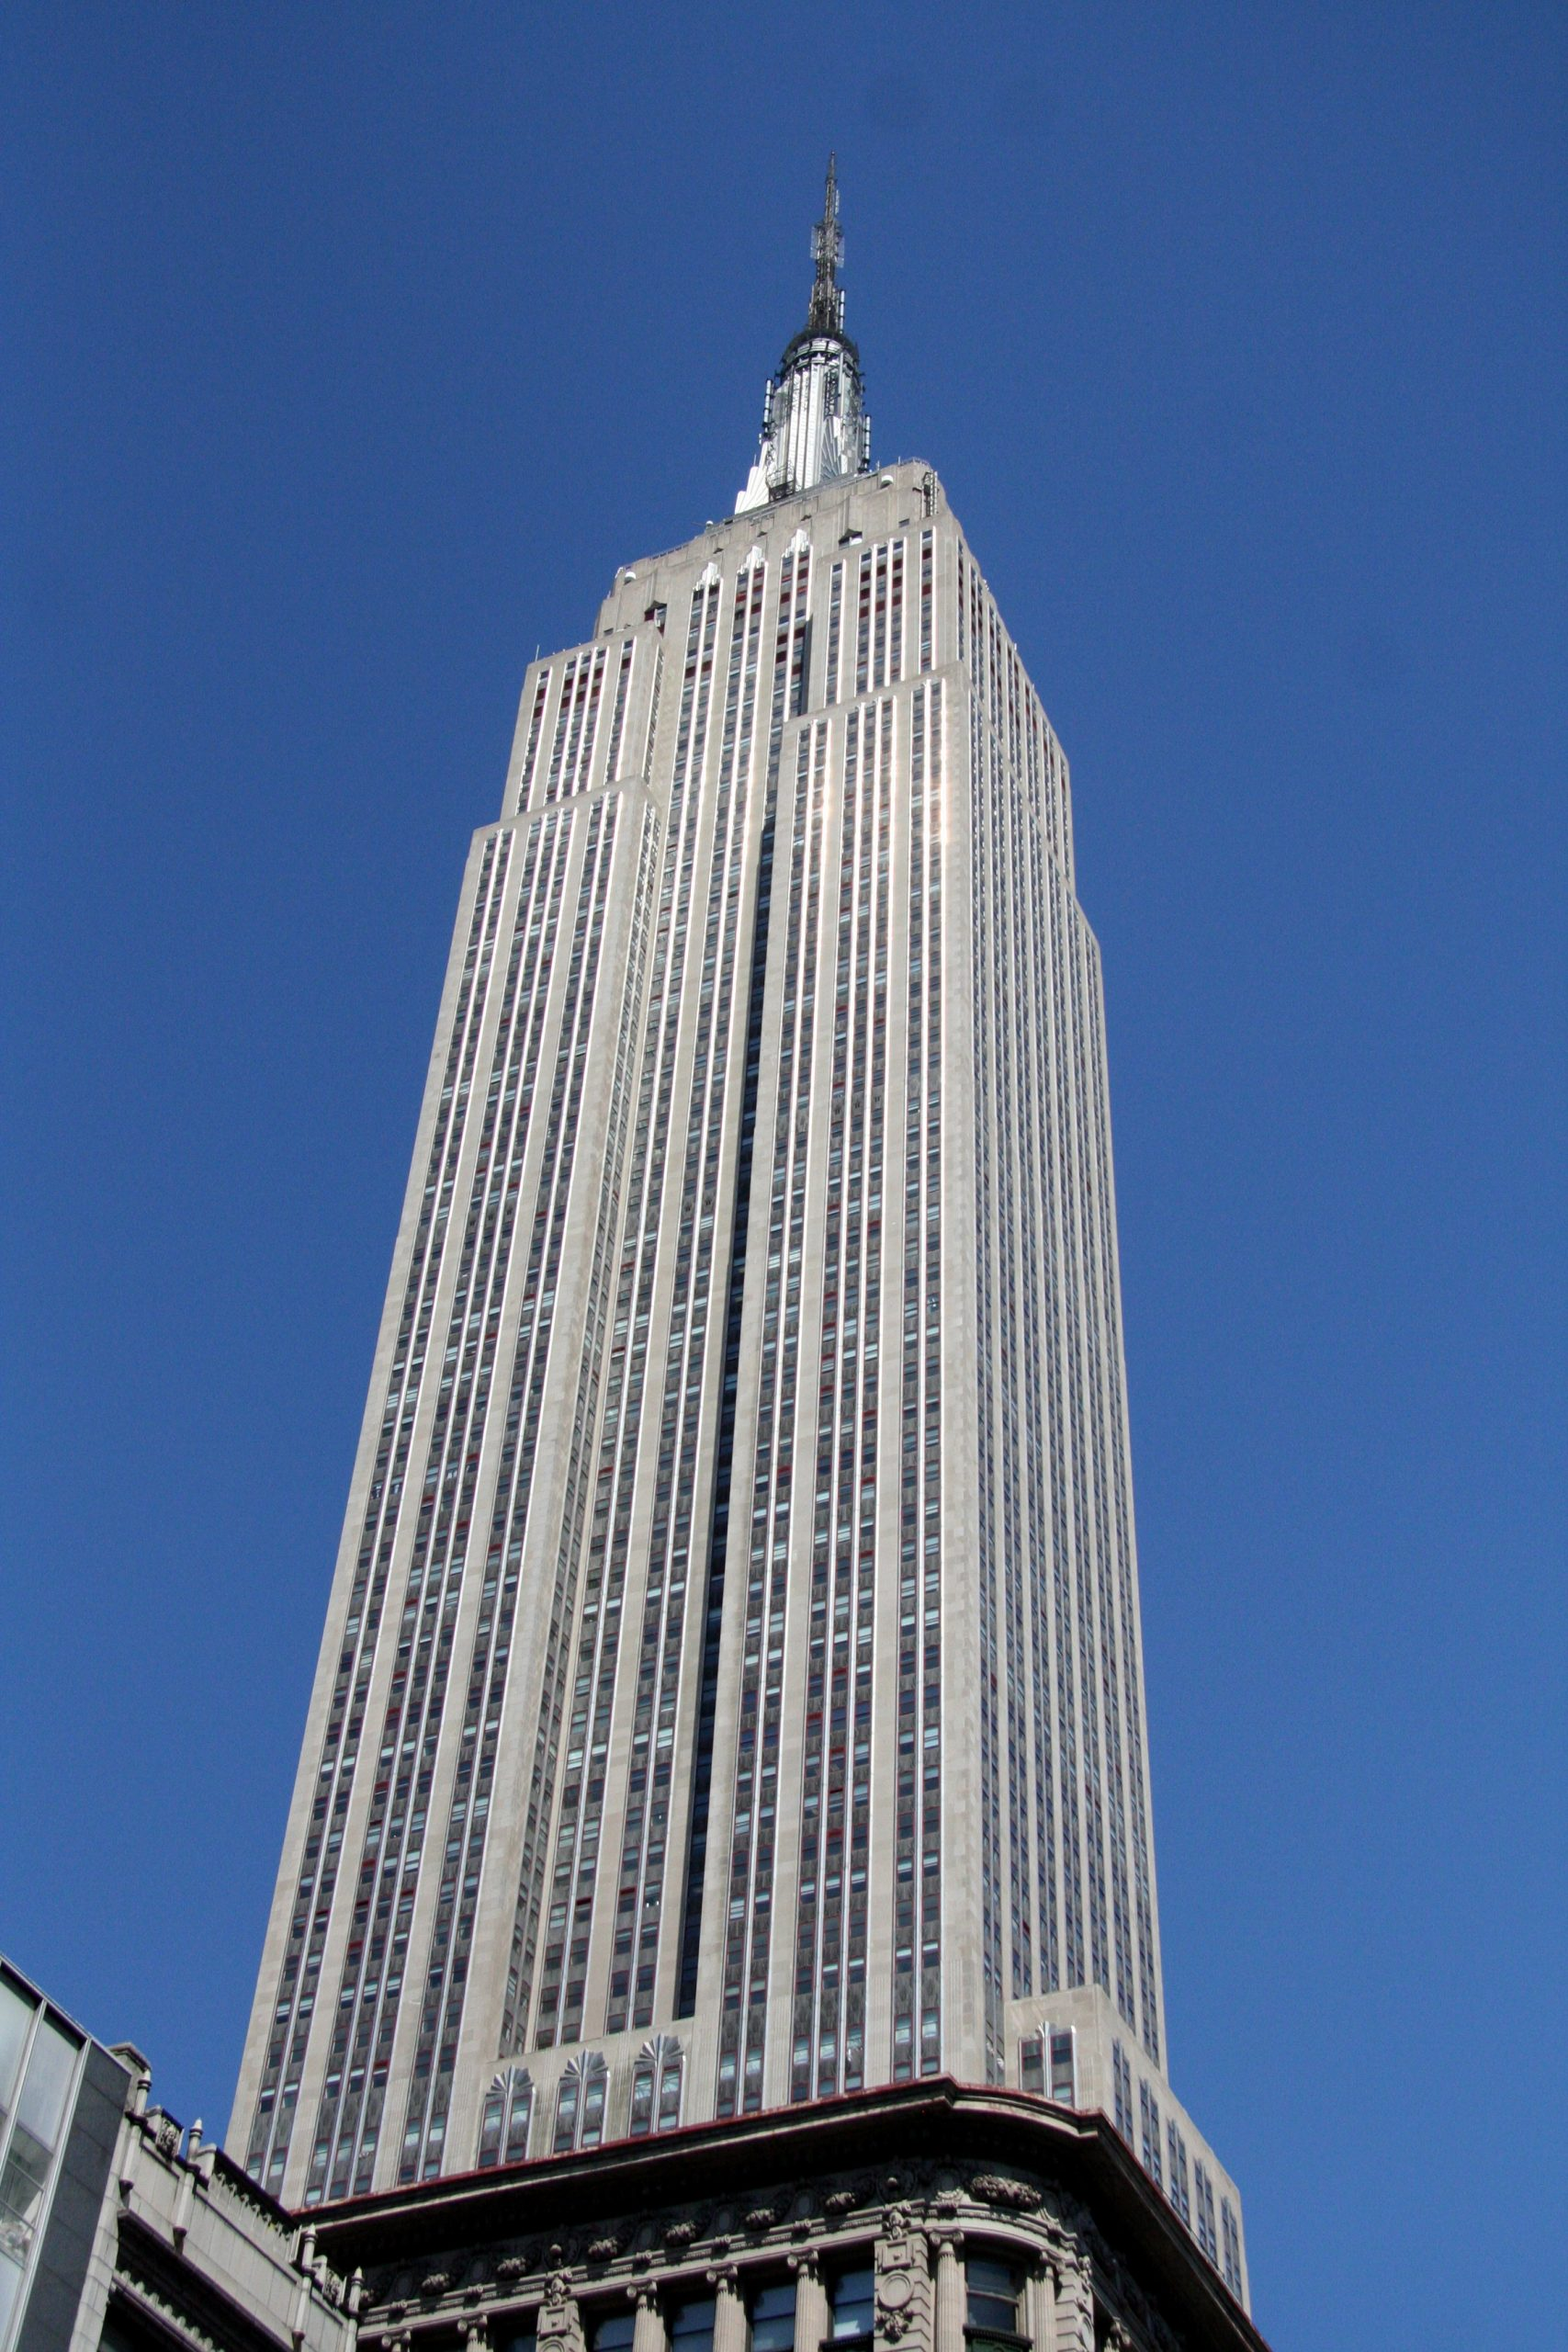 2010, Empire State Building, New York, New York